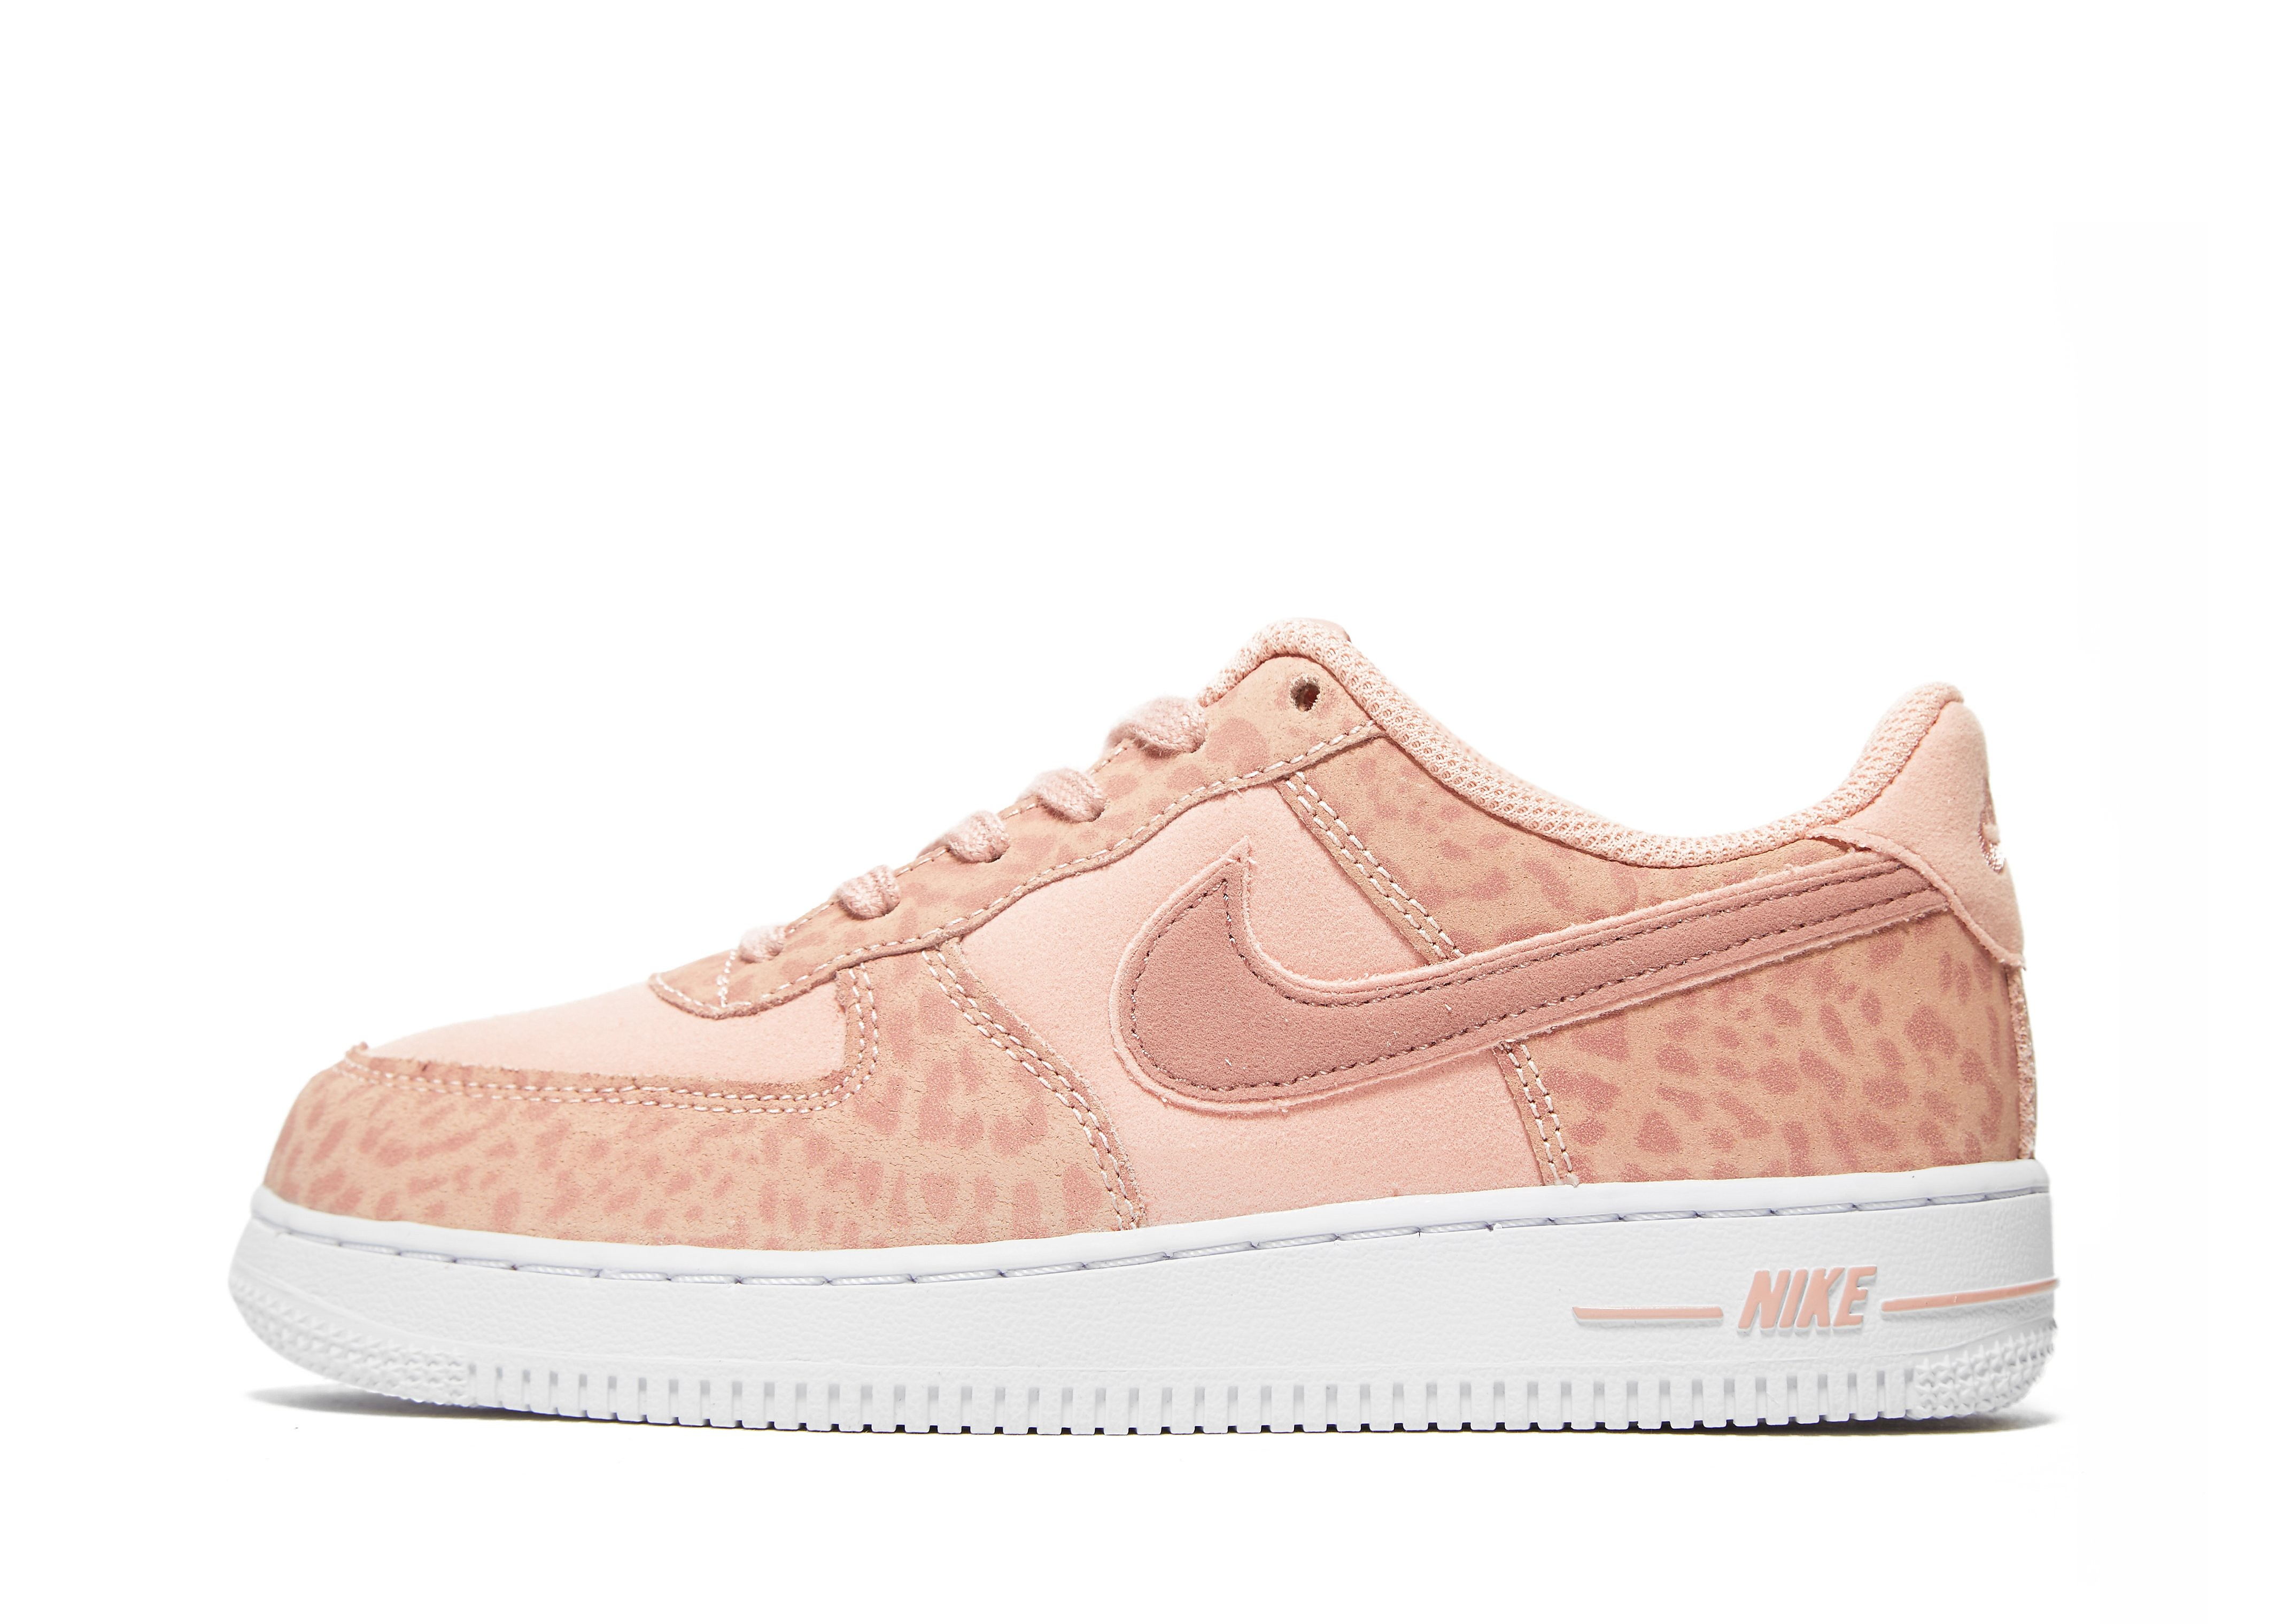 Nike Air Force 1 Low LV8 Children